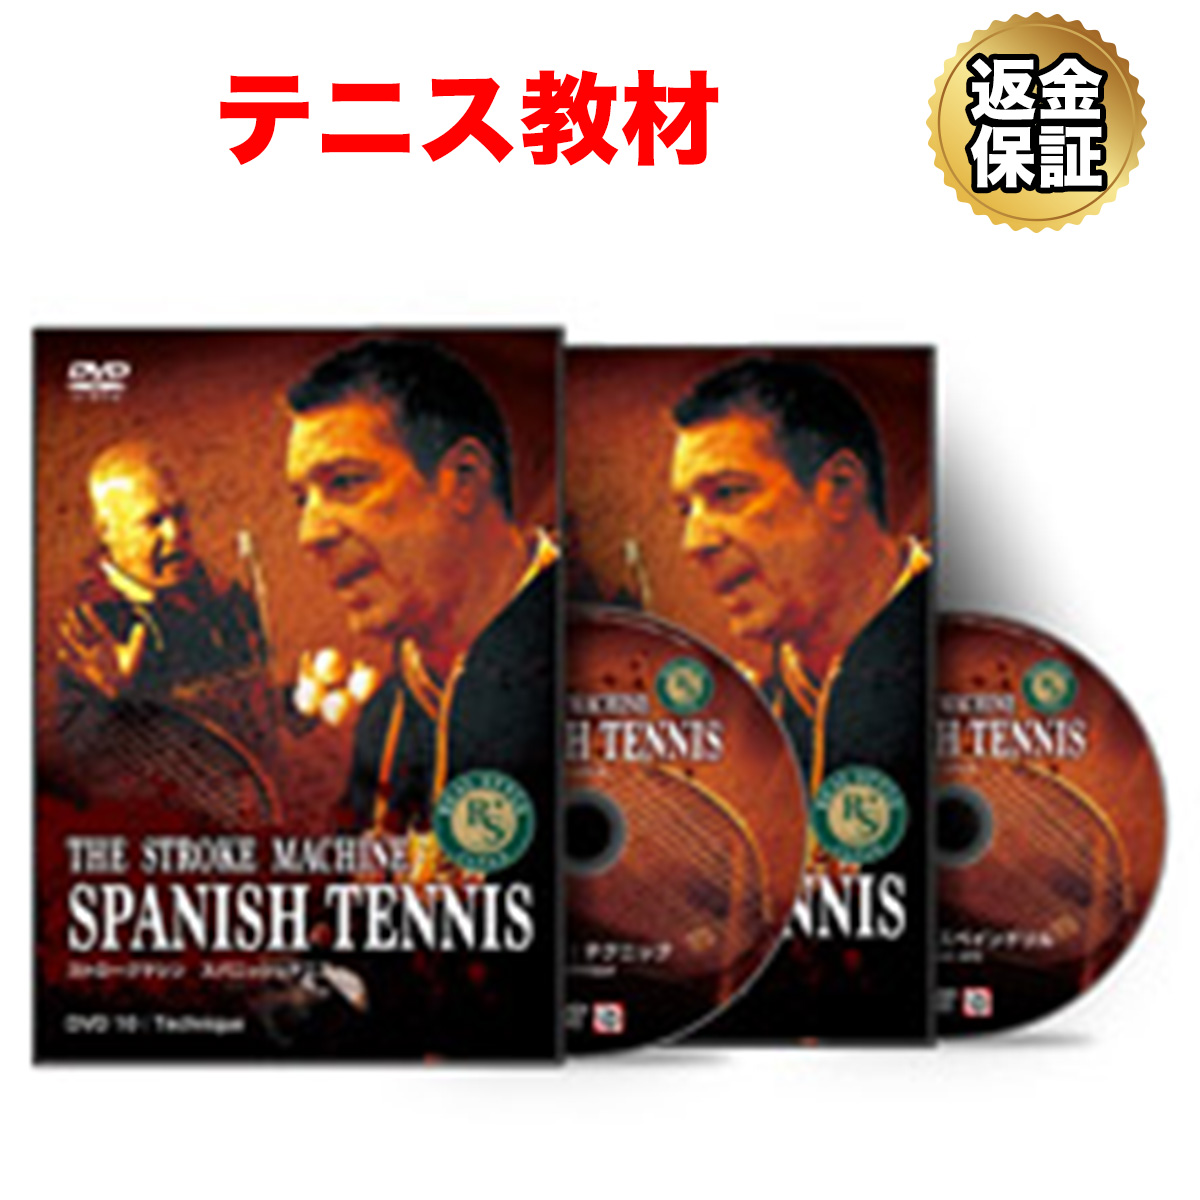 【テニス】THE STROKE MACHINE SPANISH TENNIS Disc10~11